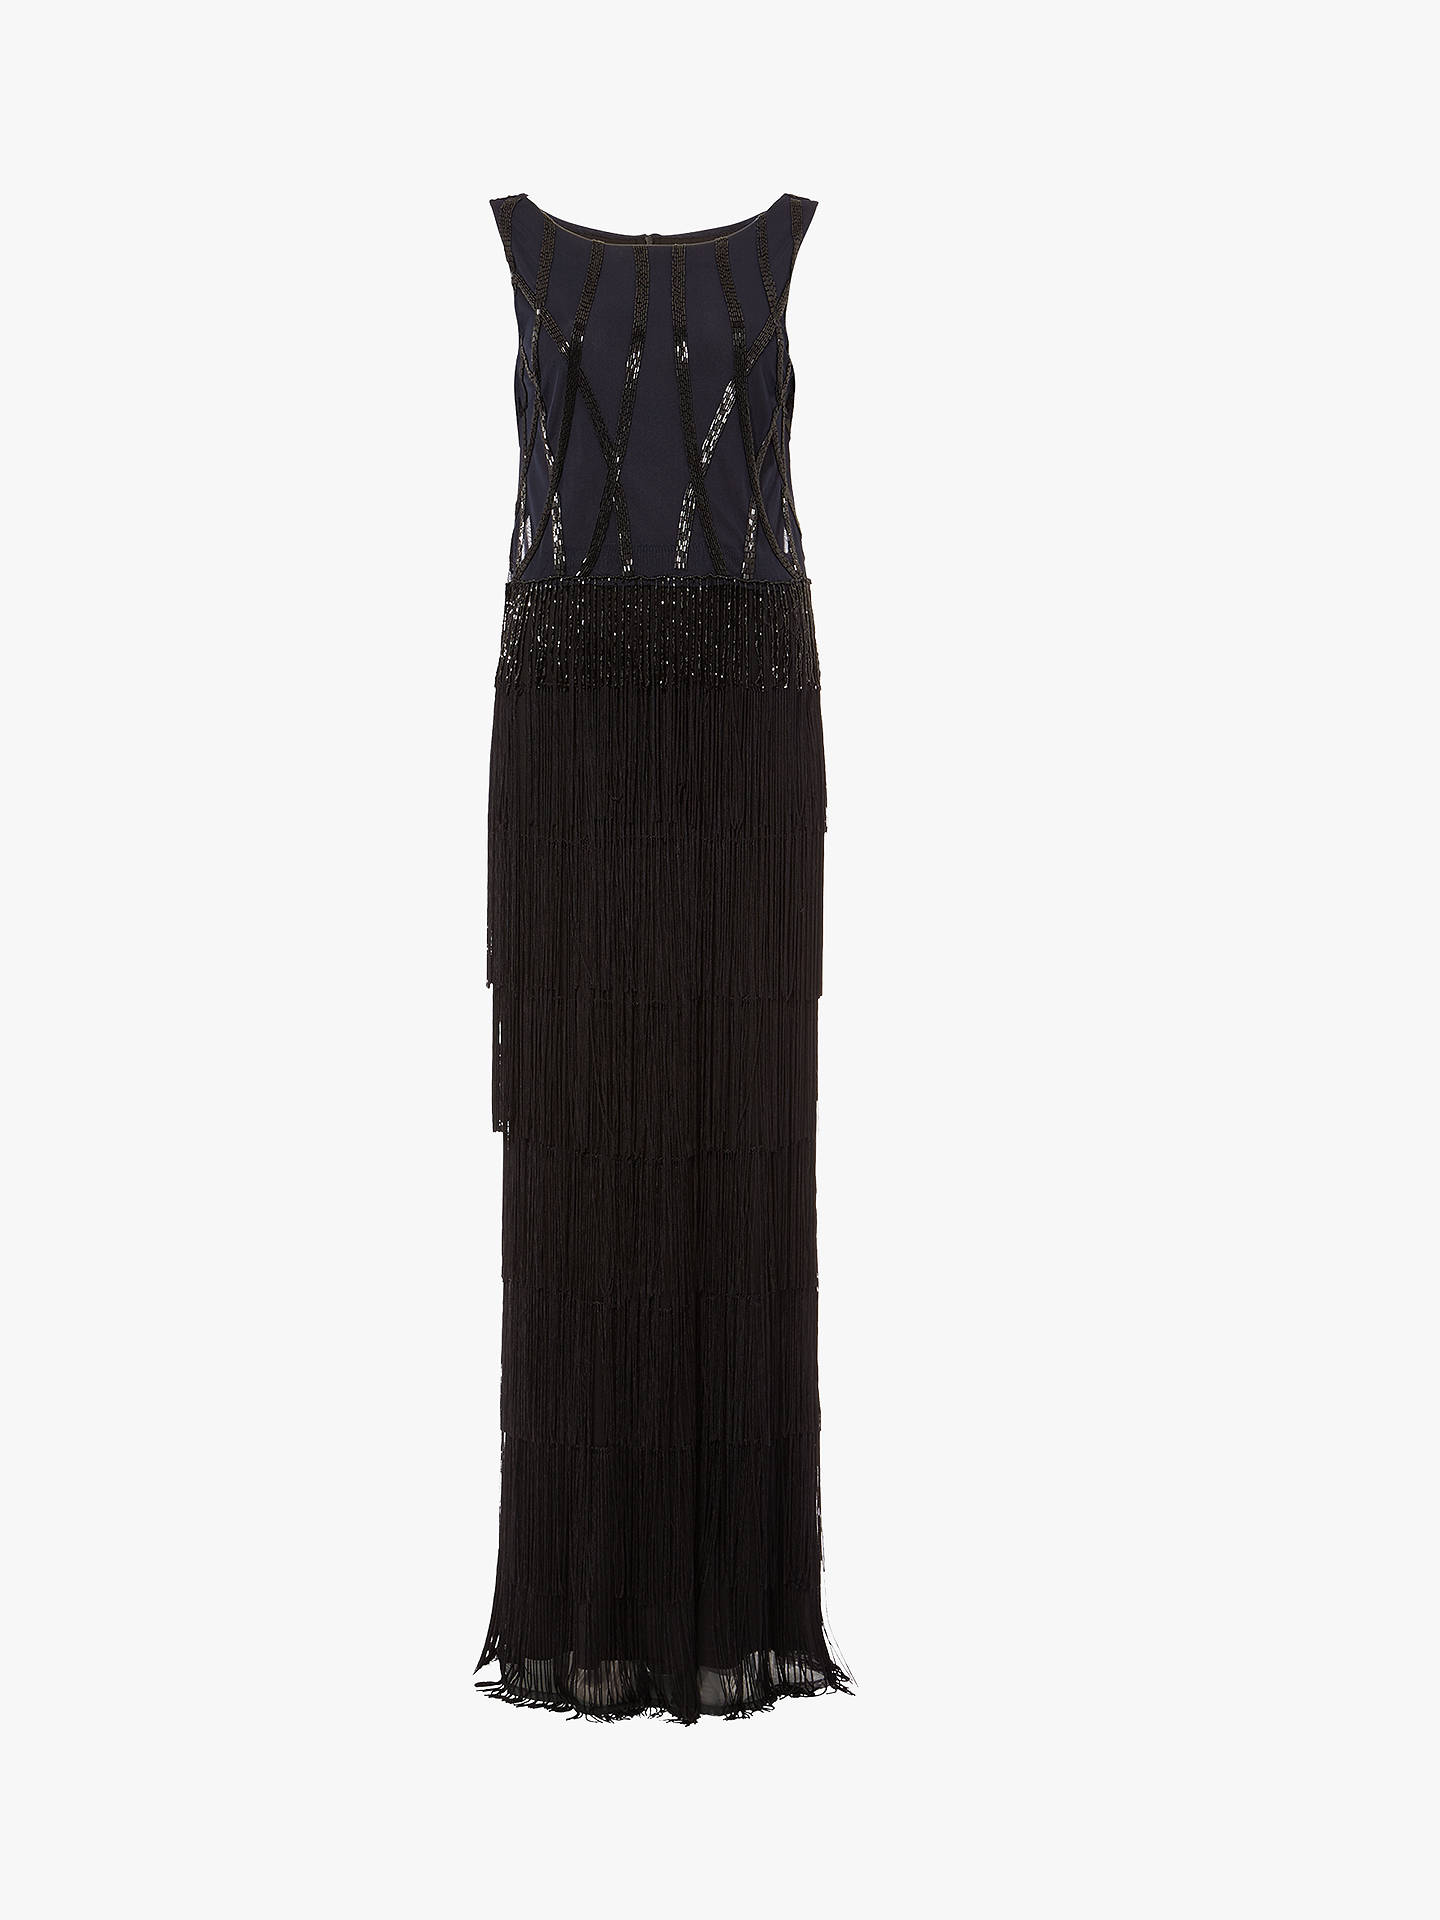 29ede43babe ... Buy Phase Eight Viola Fringe Embellished Maxi Dress